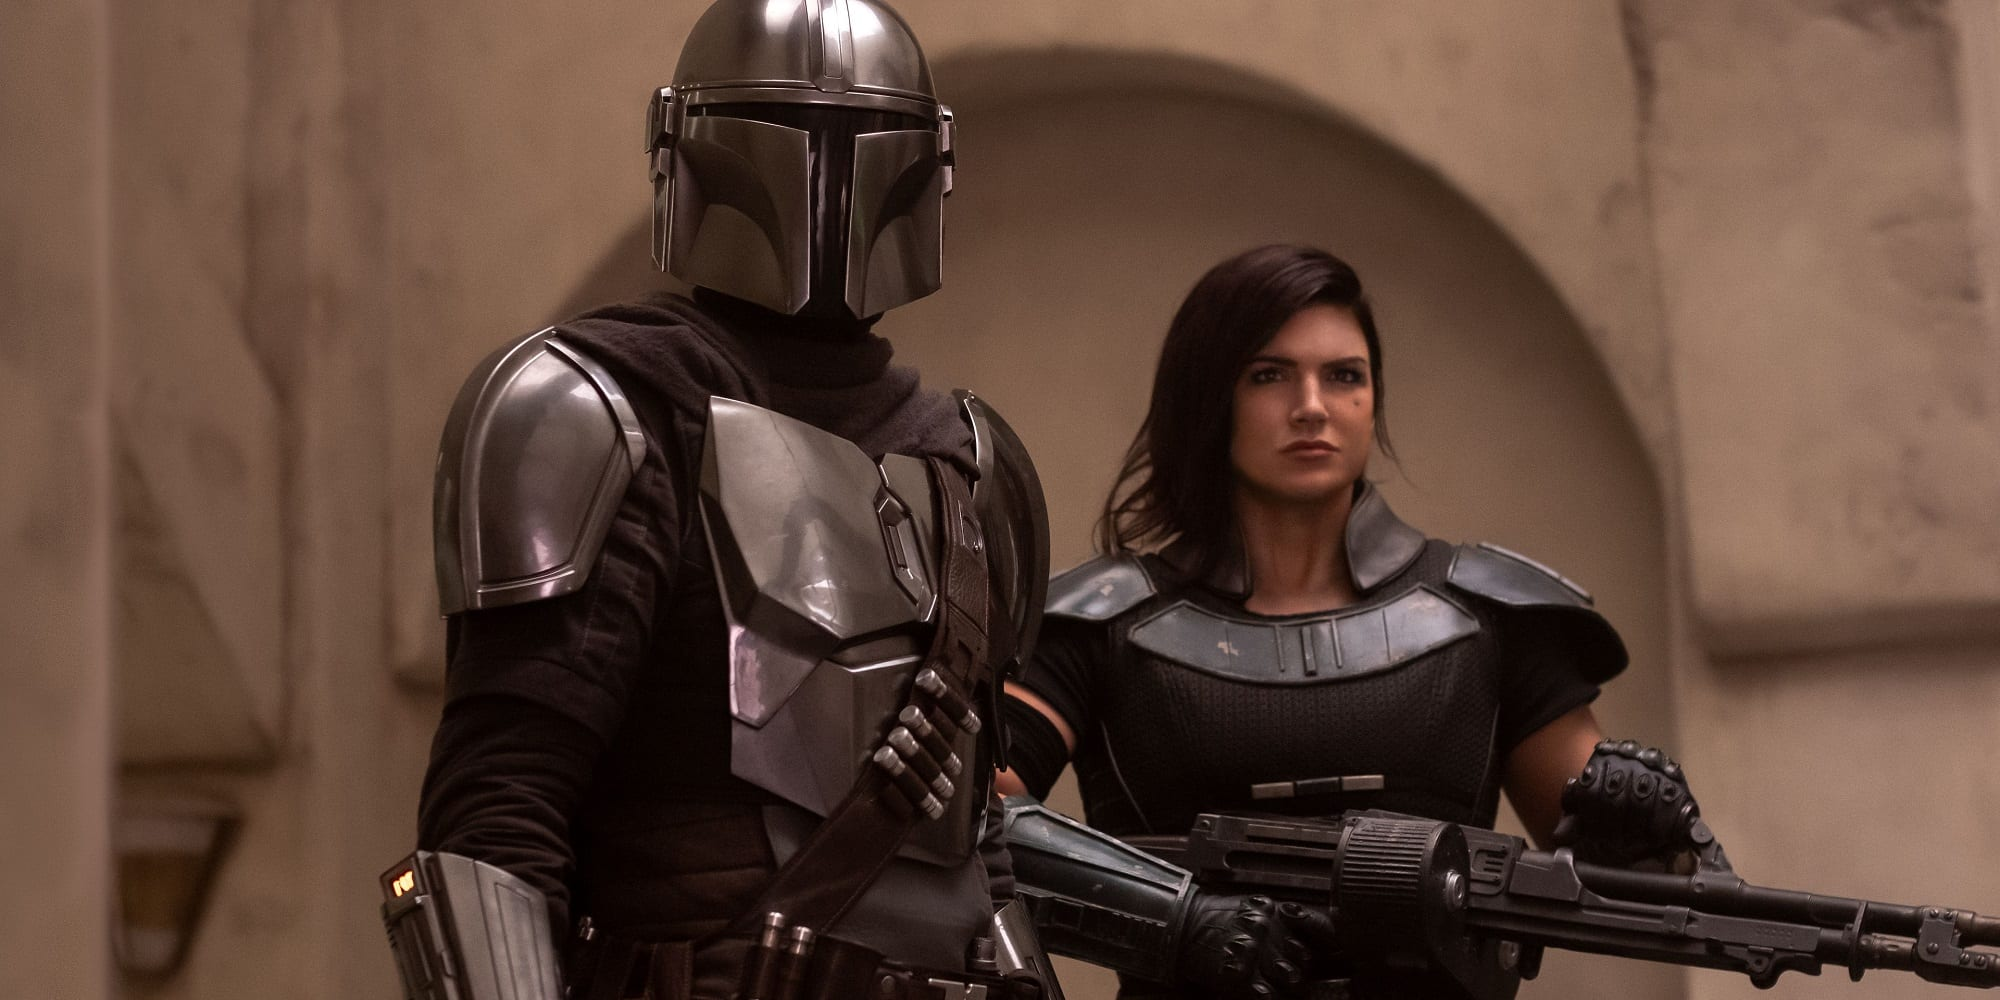 Boba Fett The Mandalorian Season 3 Featured Din Djaran Cara Dune Gina Carano